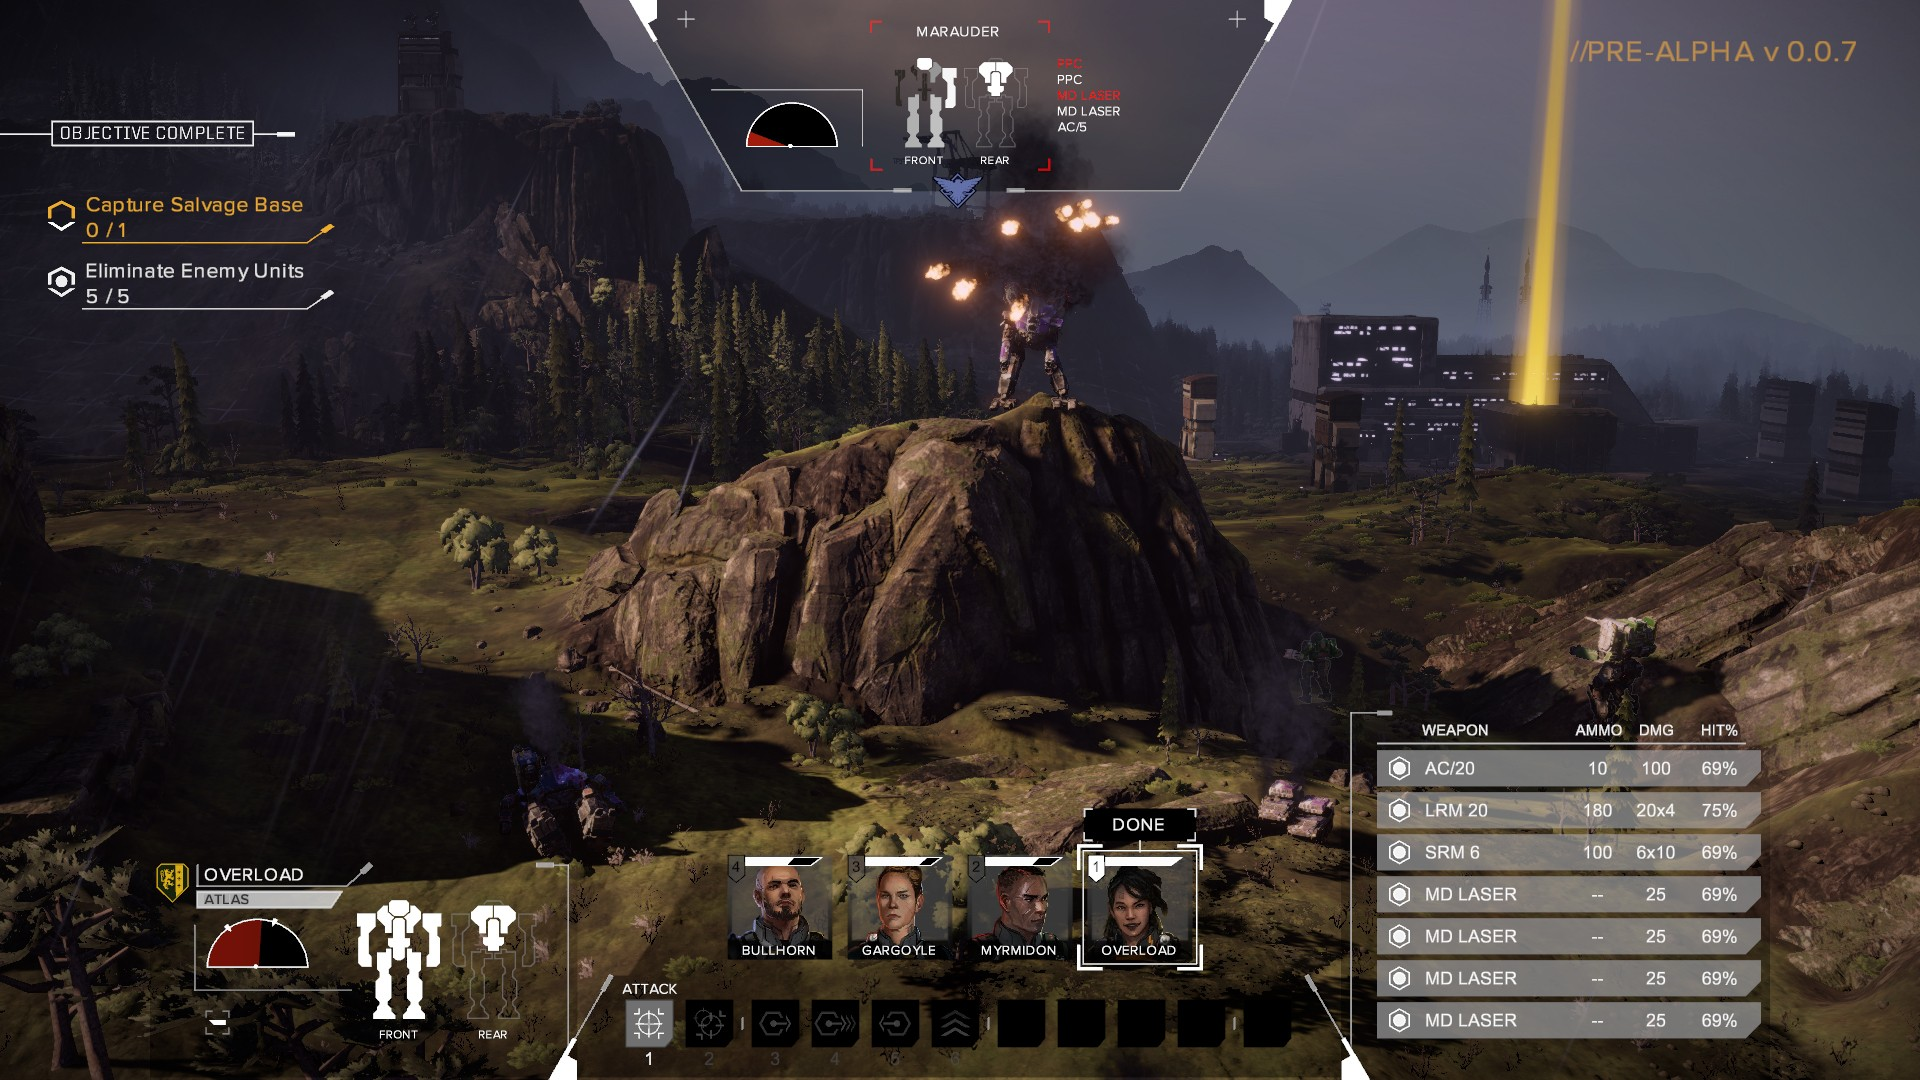 Set in the popular world of battletech, this deep strategy game allows players to visit three